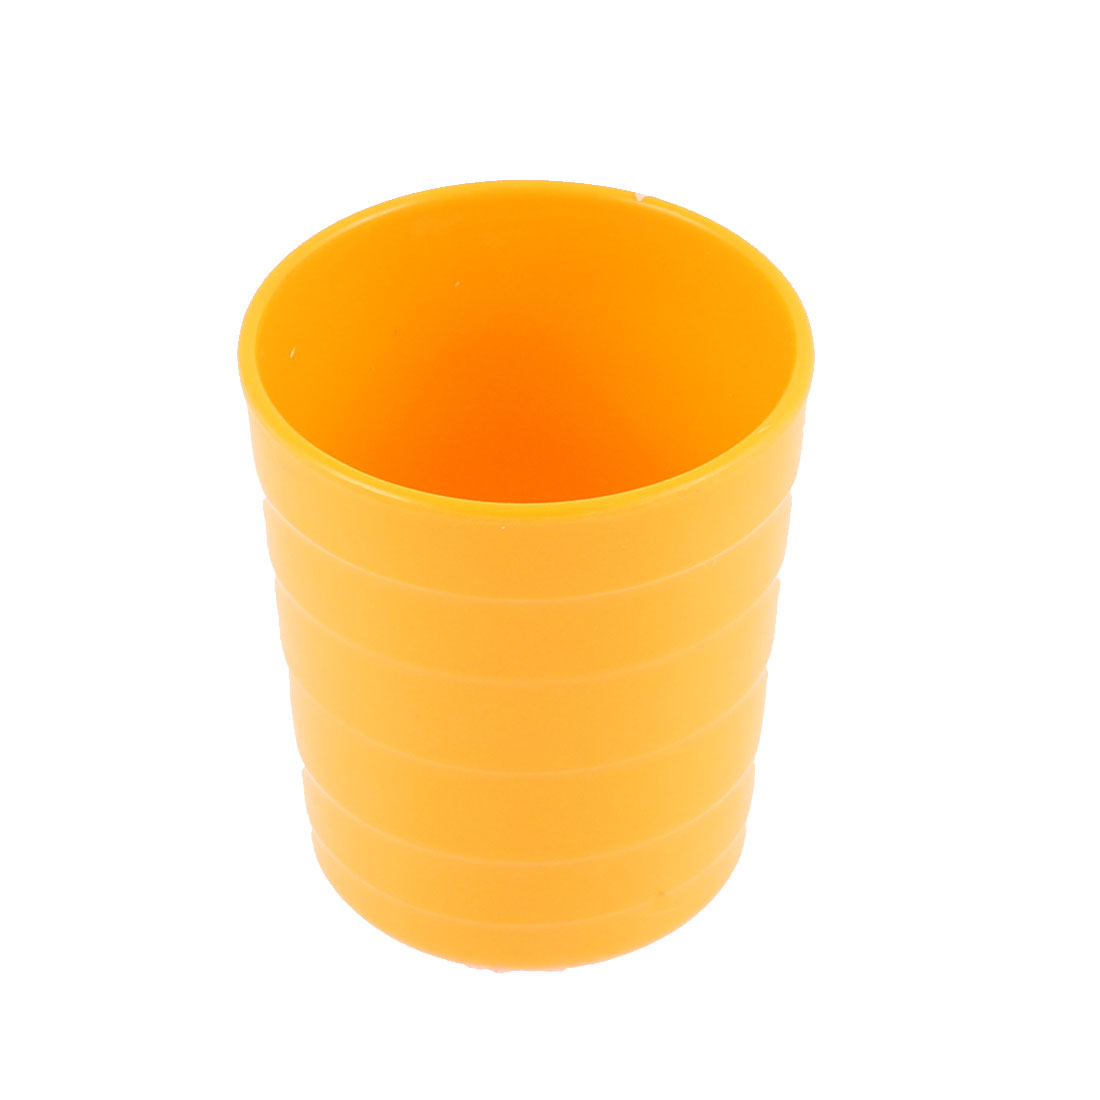 Restaurant Coffee Shop Plastic Cylinder Shaped Water Tea Drinking Cup Orange